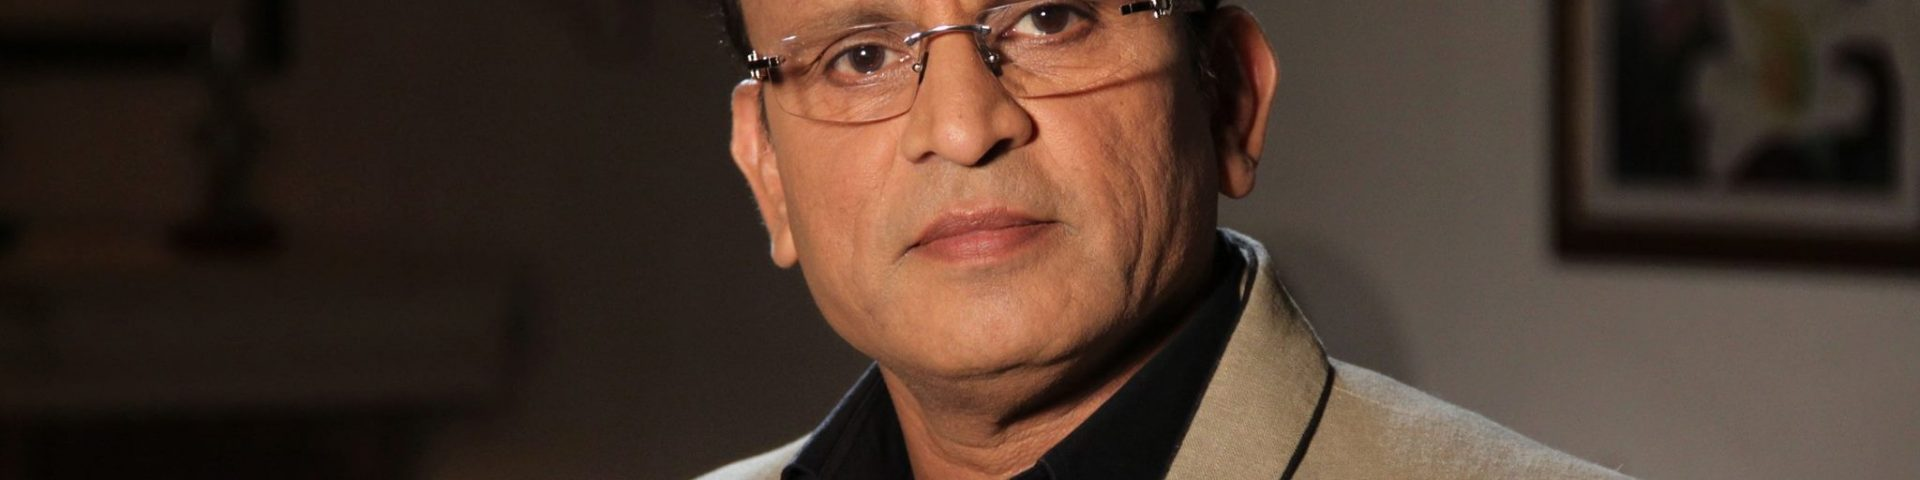 annu kapoor facts 1920x480